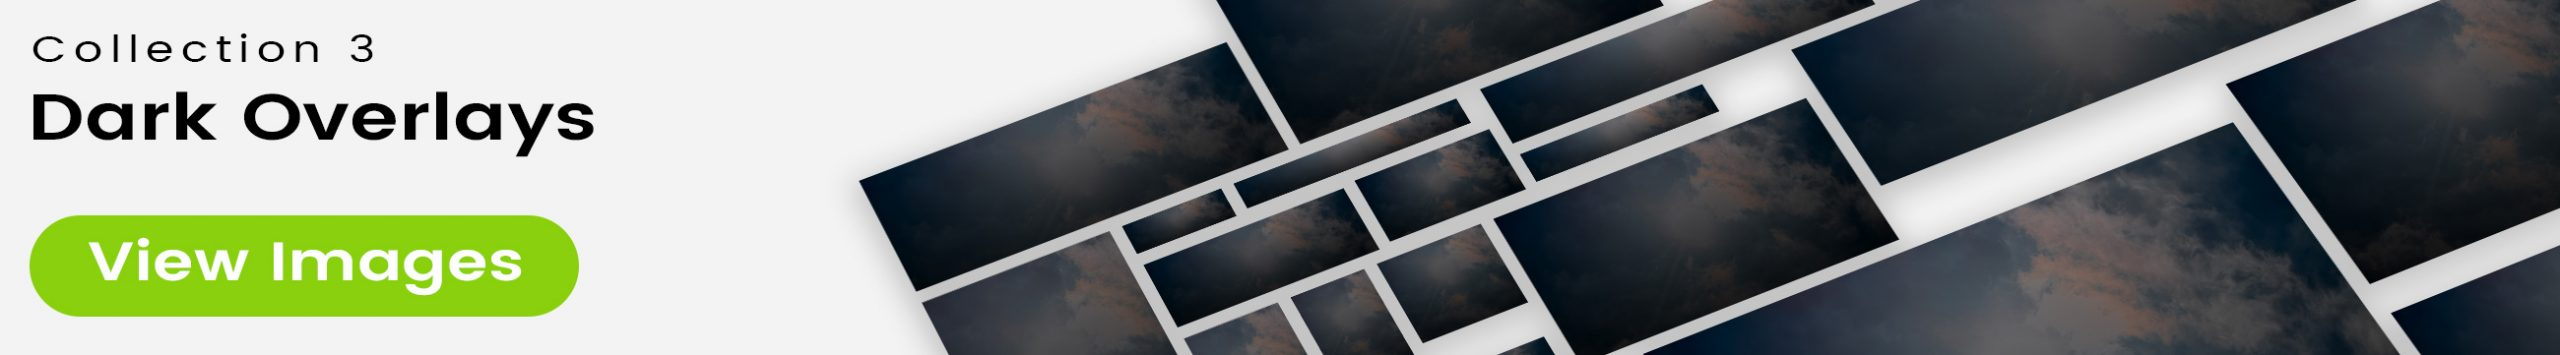 See 25 of 100 free bonus images included with clouds stock image 9461. Collection 3 features a dark overlay design.